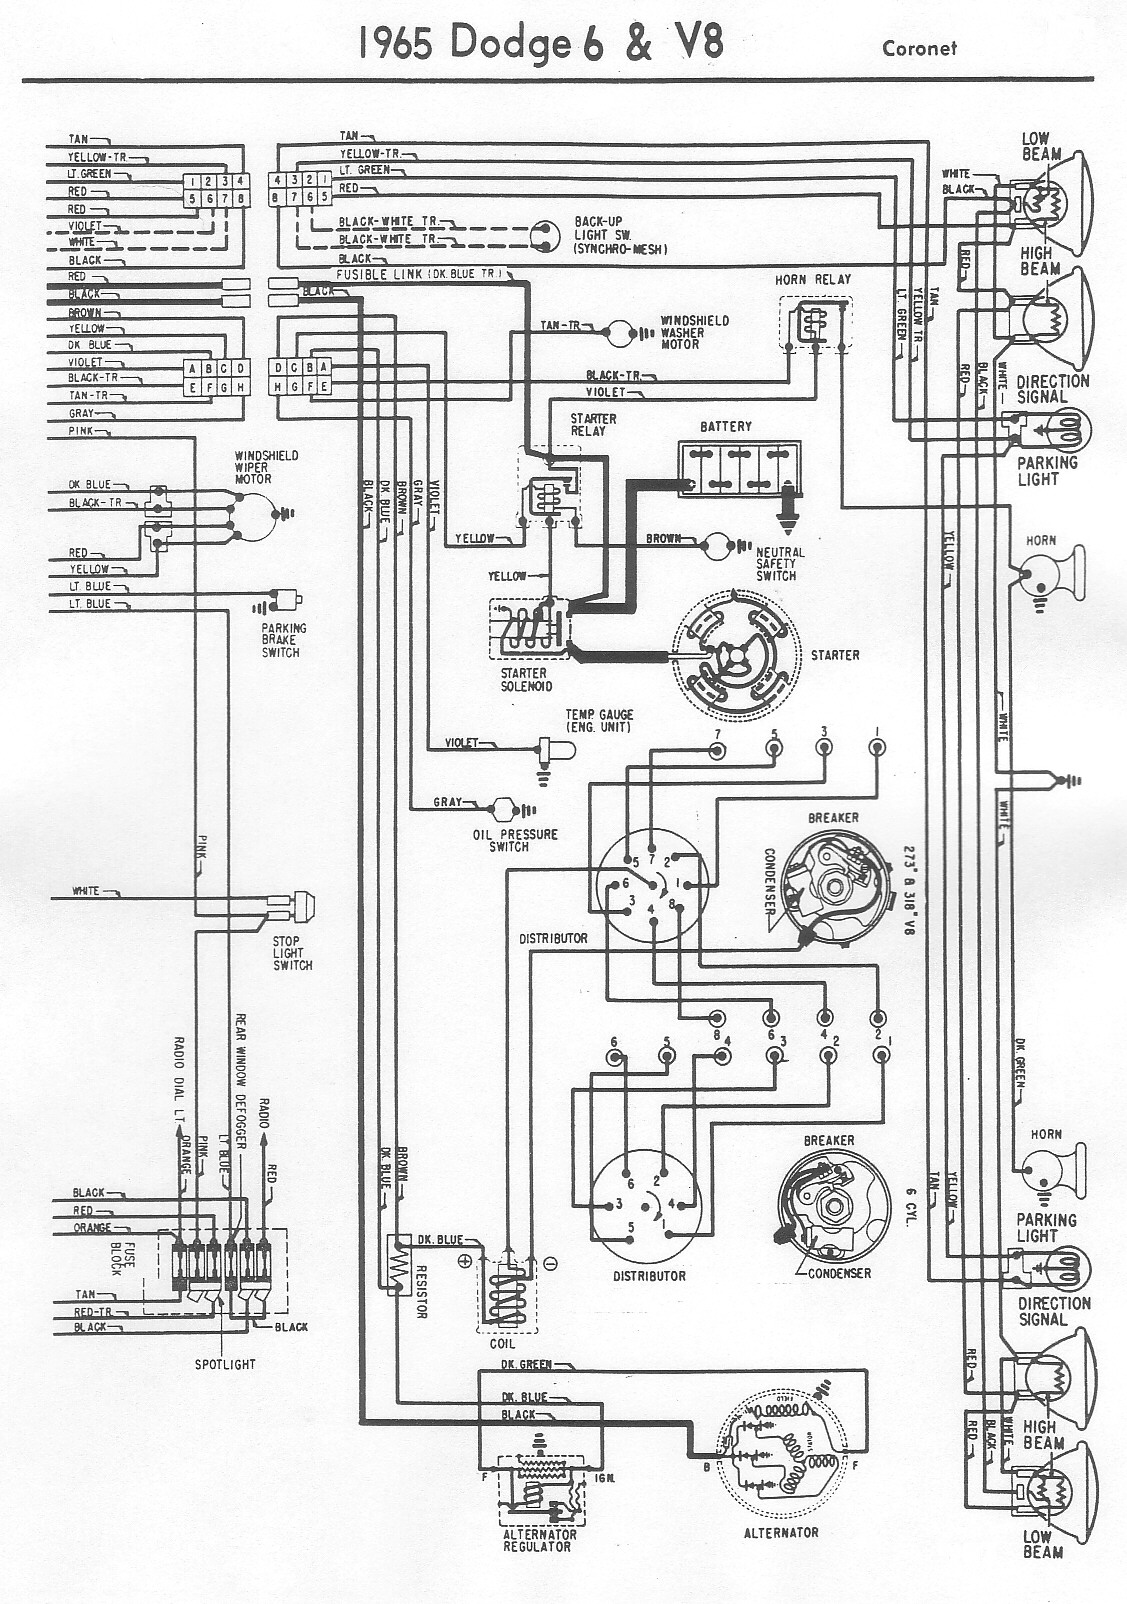 1967 Dodge Dart Wiring Diagram : 30 Wiring Diagram Images